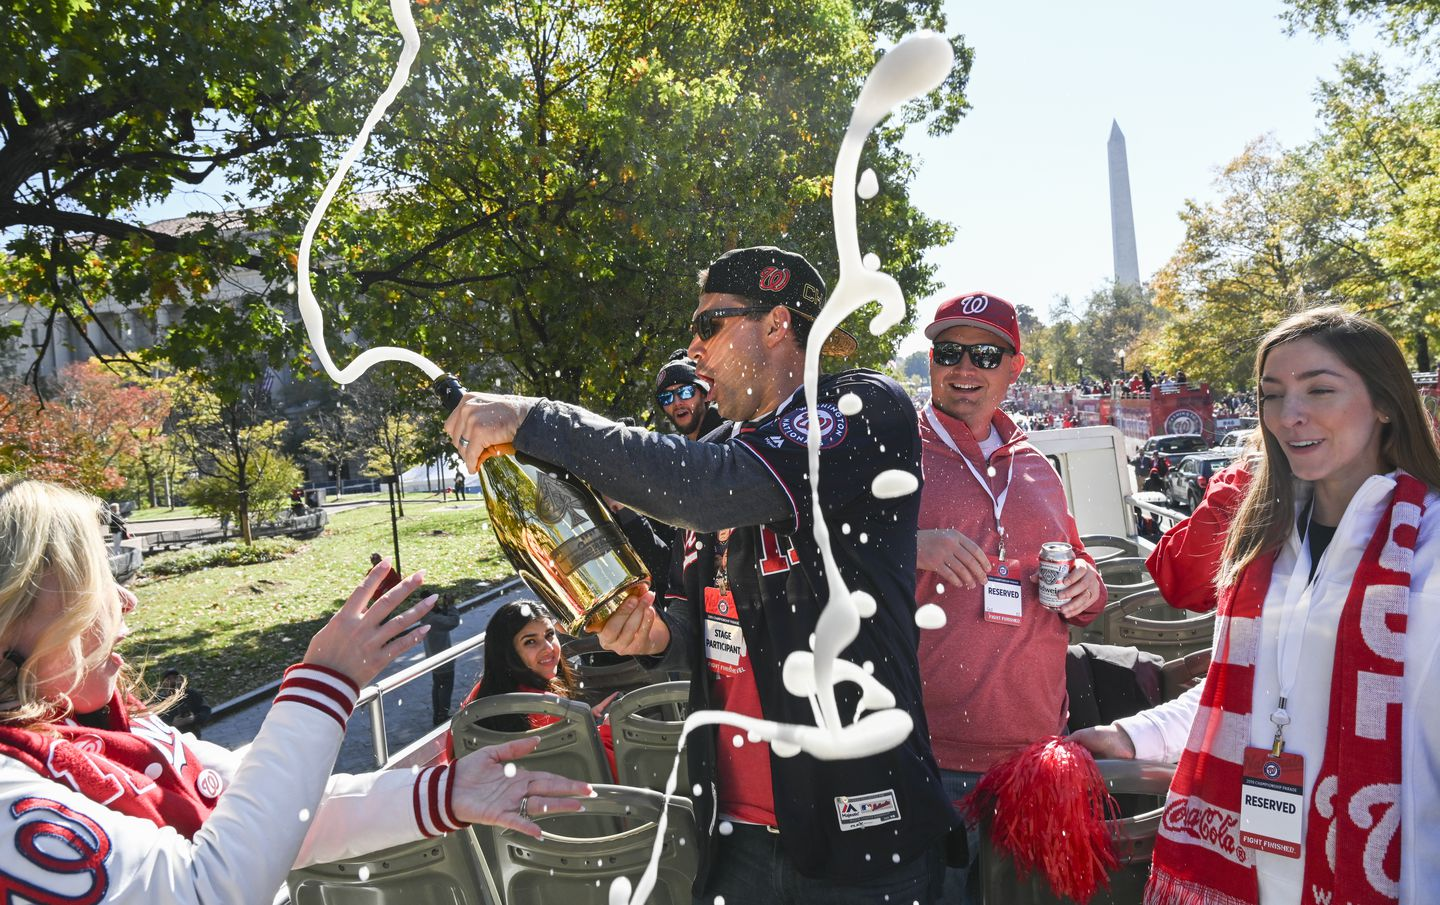 Nationals' World Series victory parade live updates video